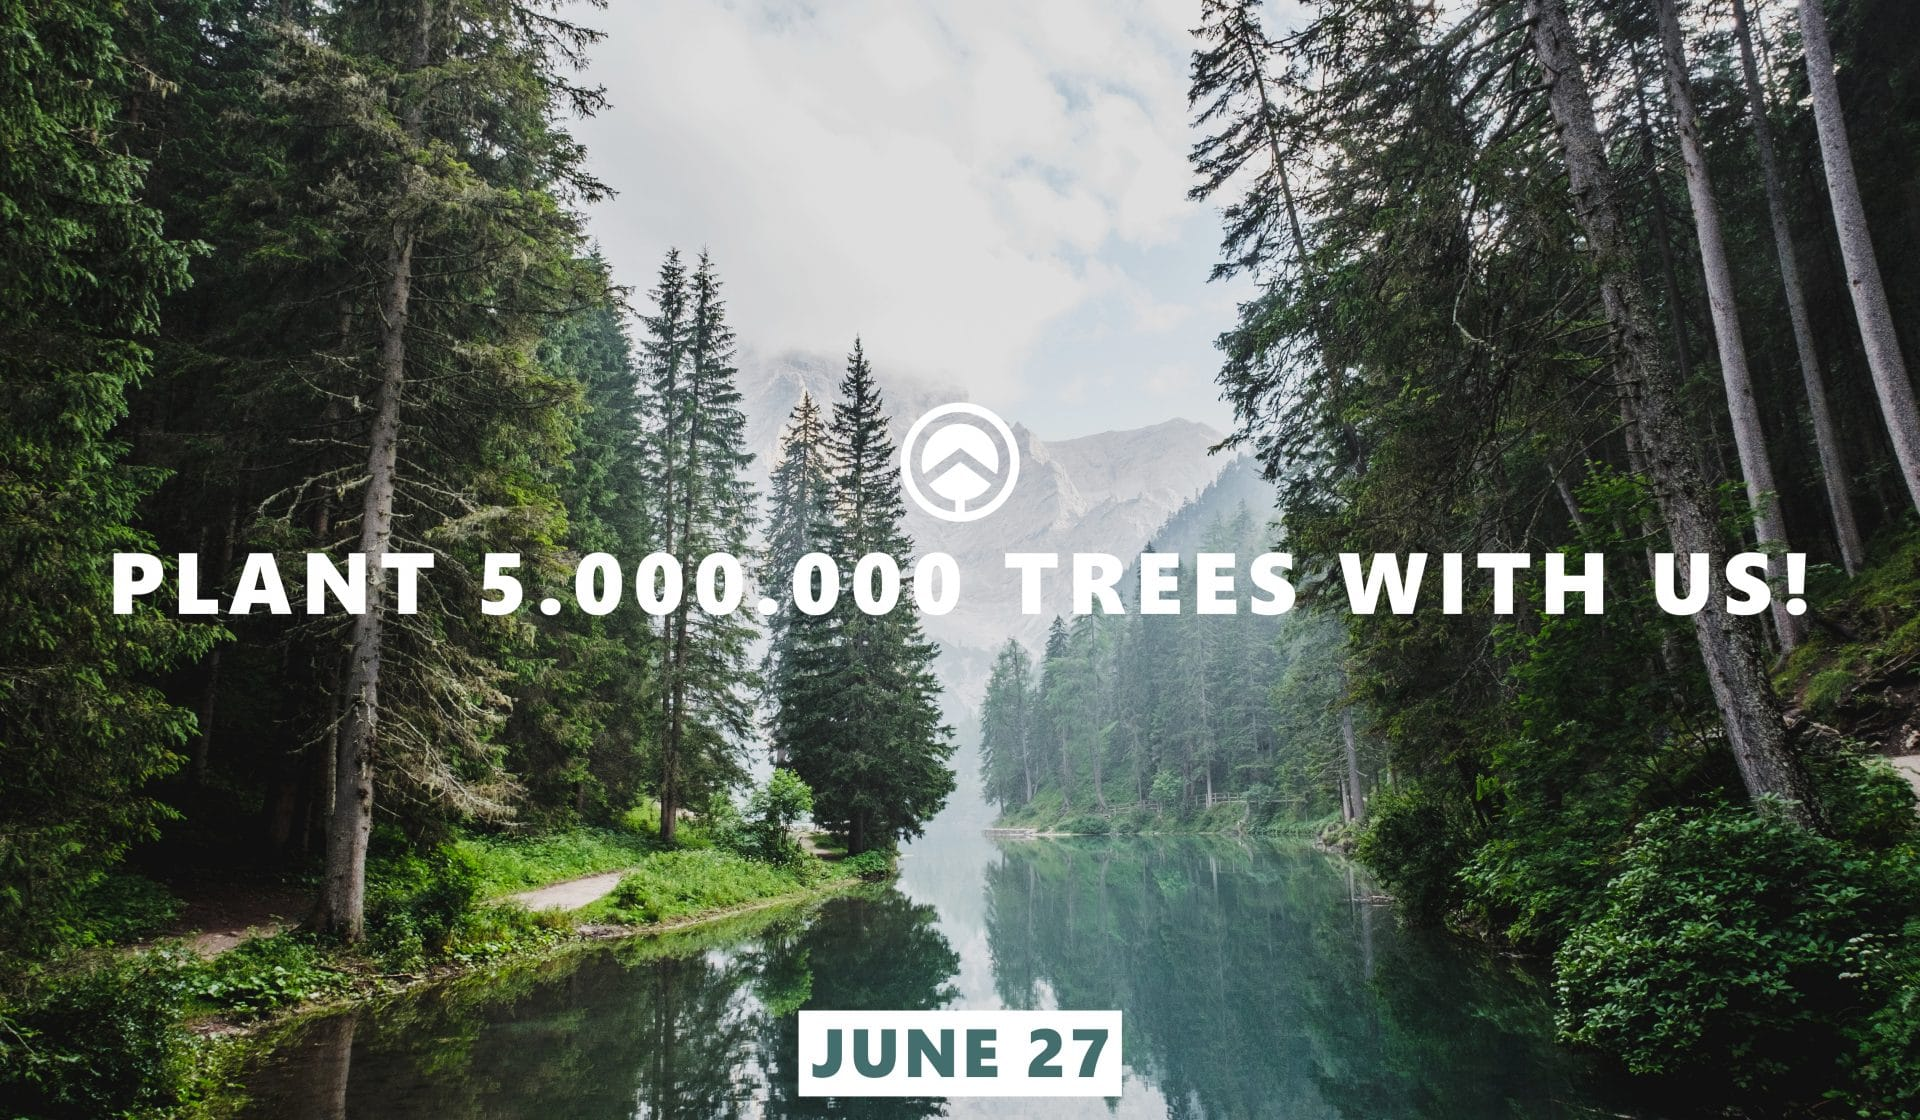 Plant 5000000 trees with us5